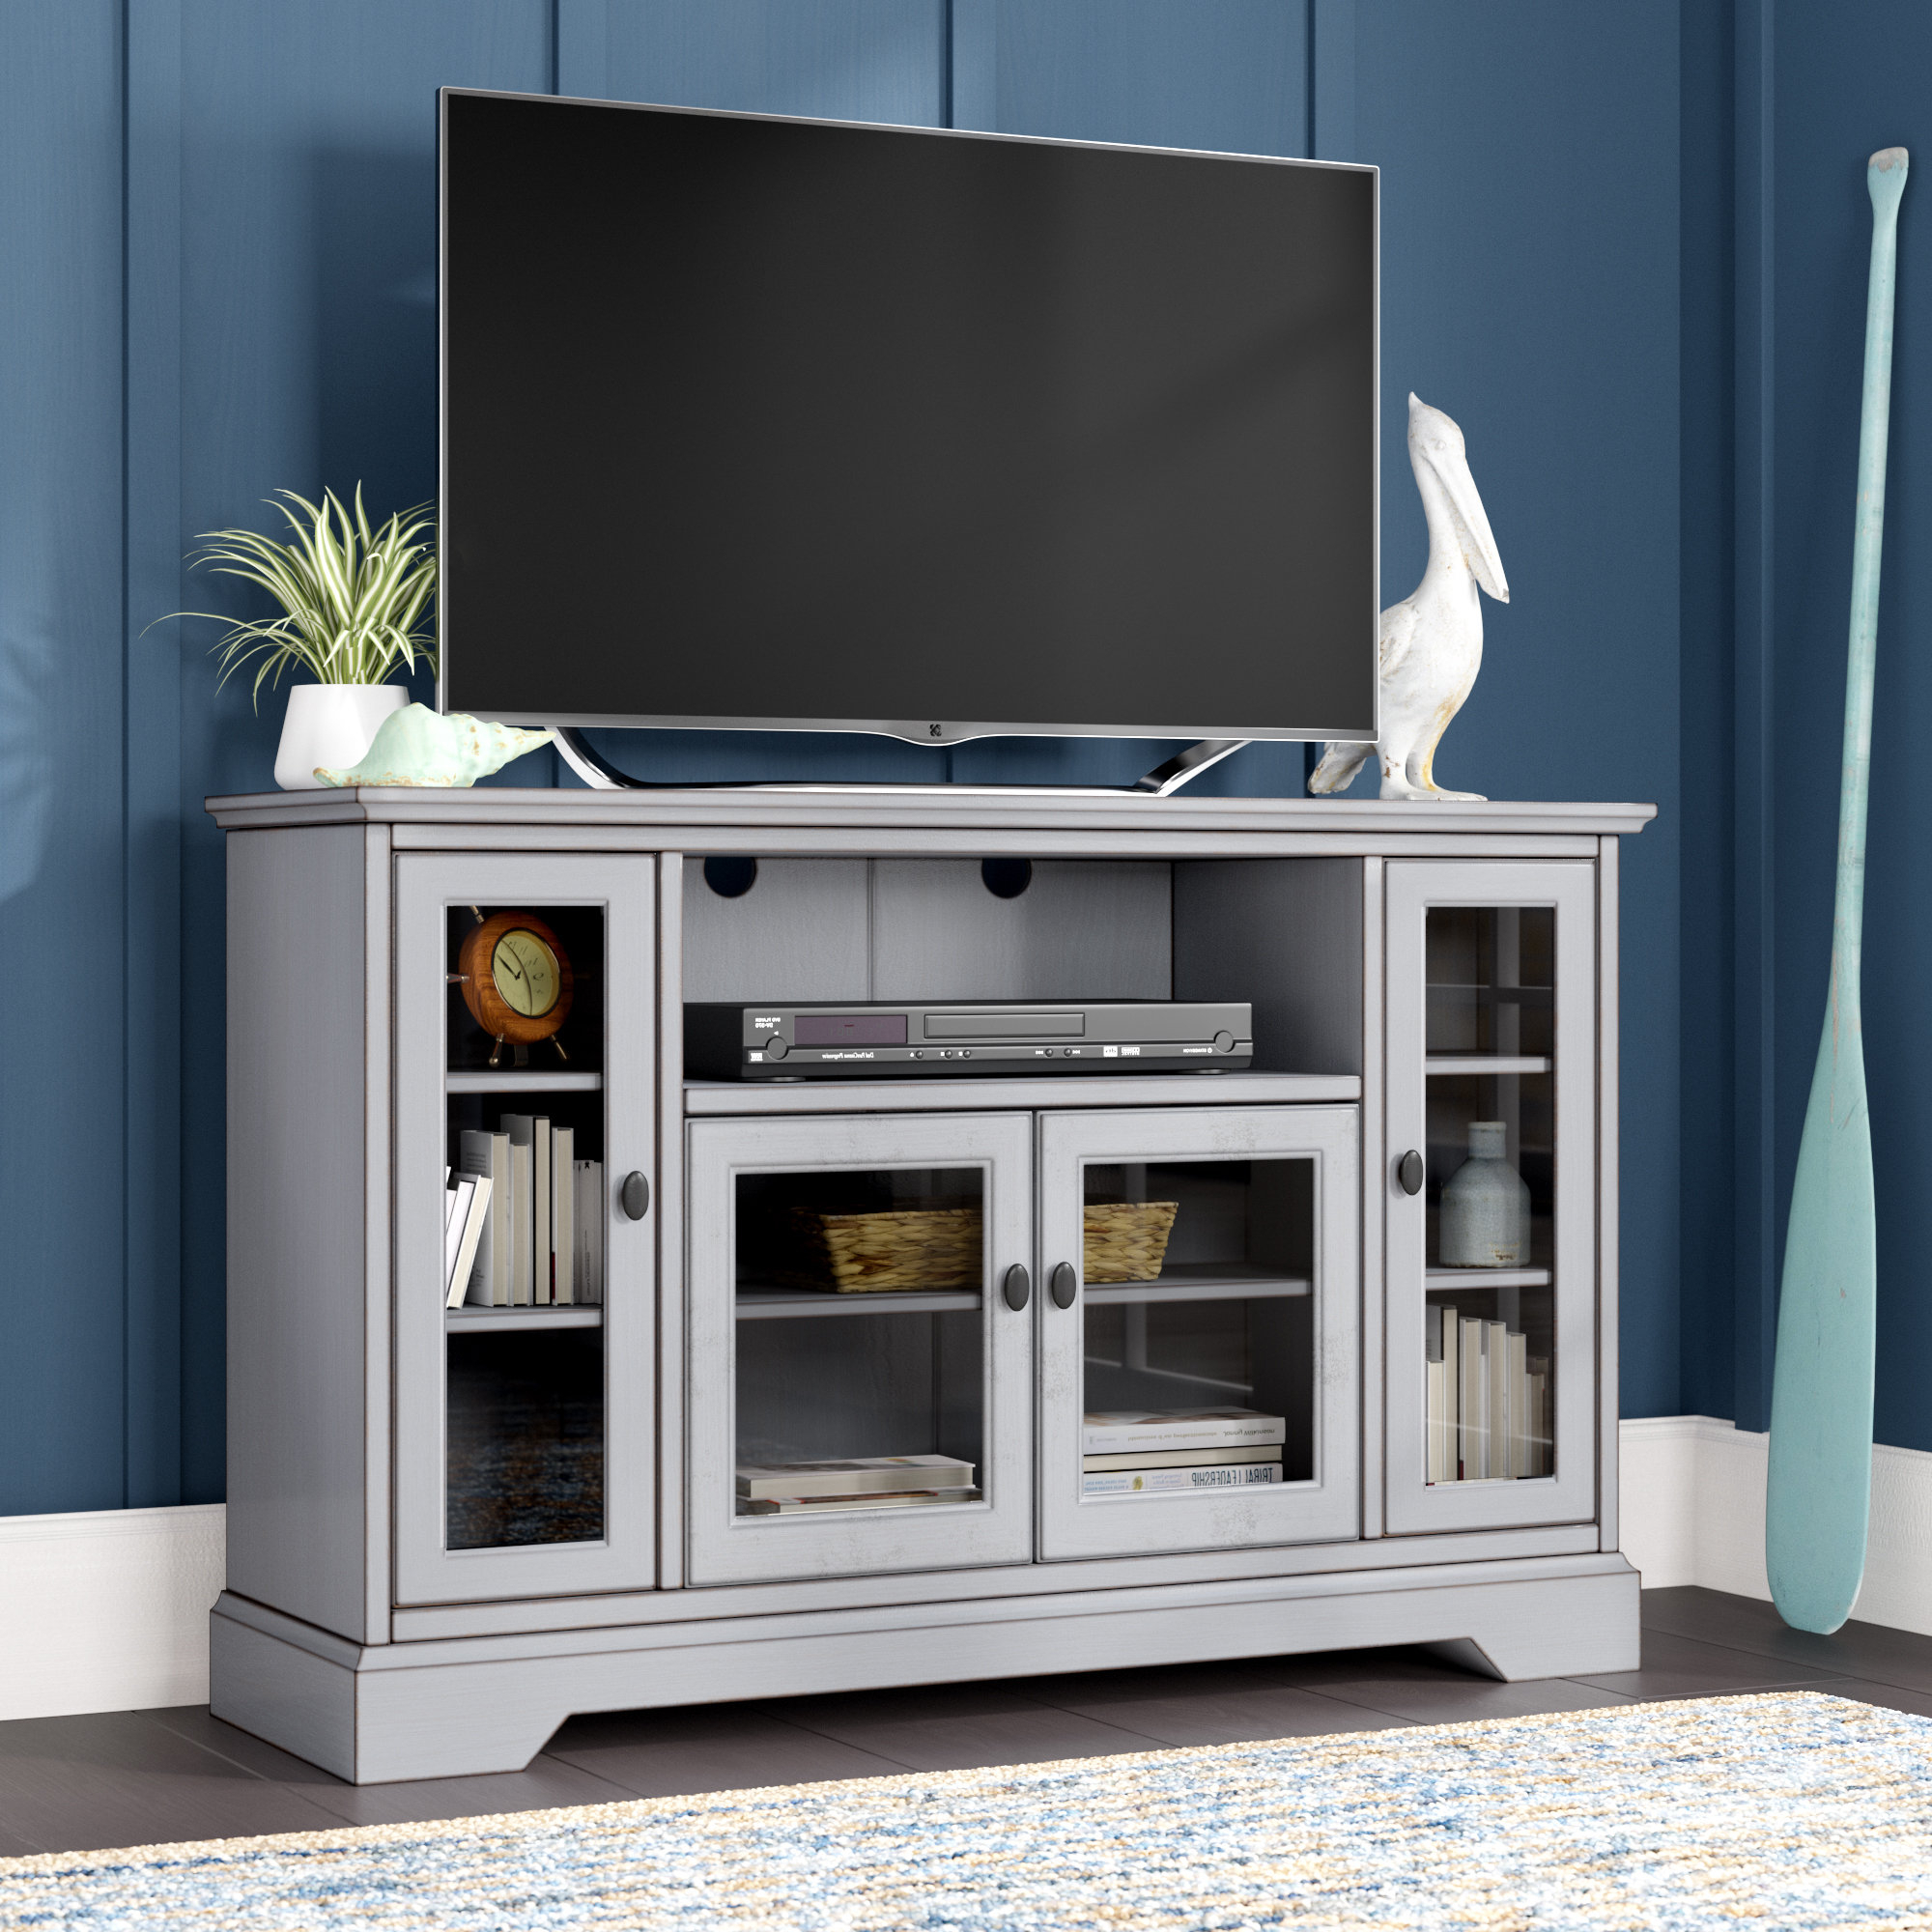 Tall Tv Stands You'll Love | Wayfair In Canyon 64 Inch Tv Stands (Gallery 11 of 20)